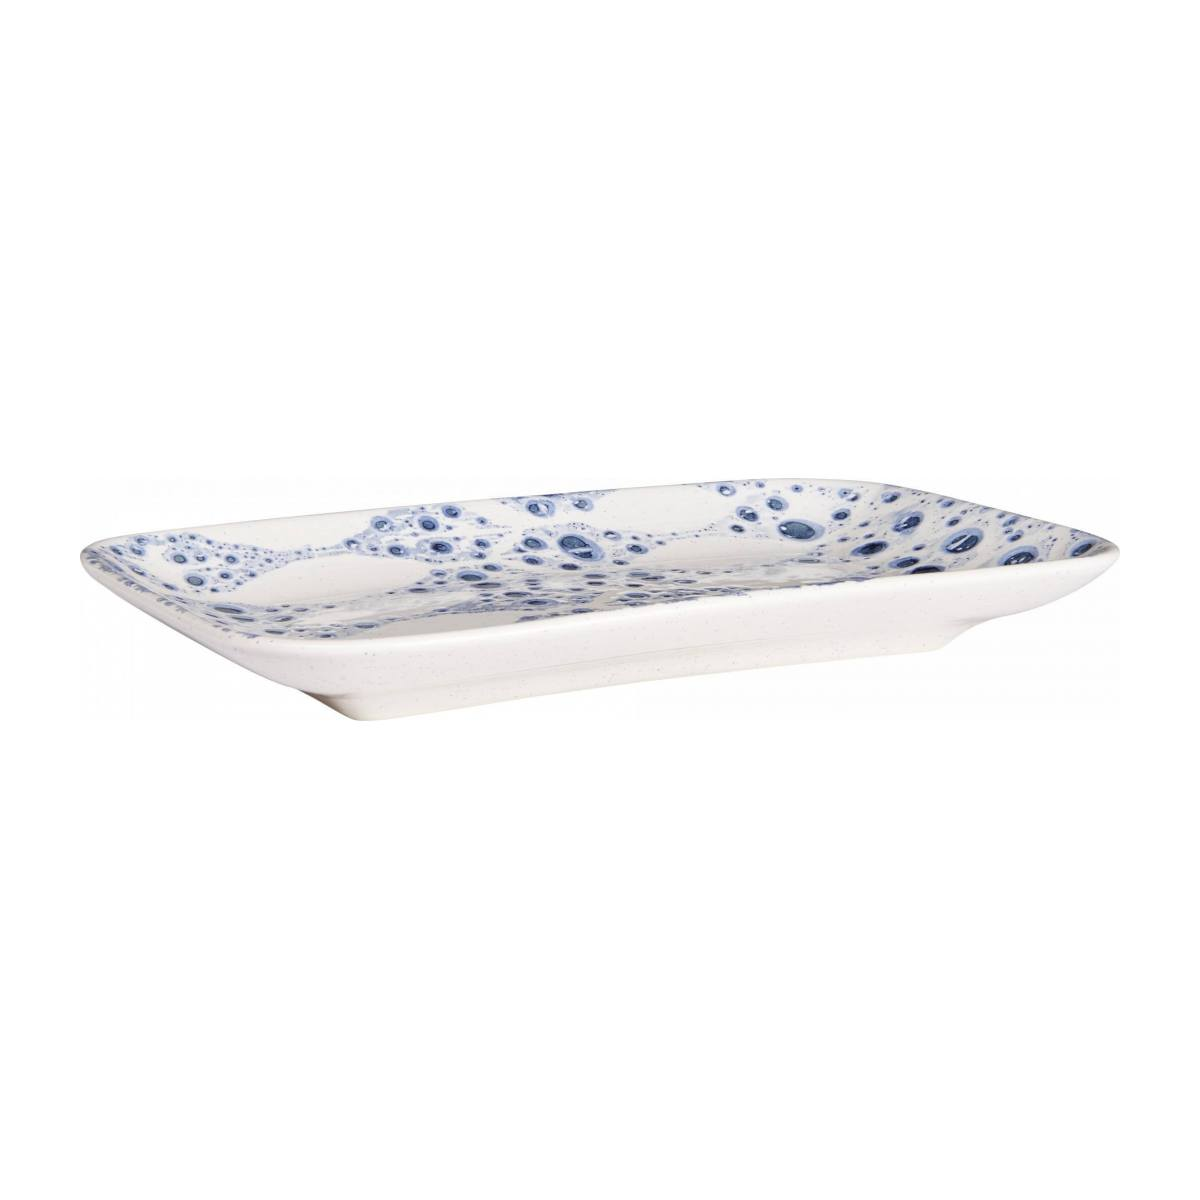 Presentation dish rectangulaire made of faience 25cm, white n°1